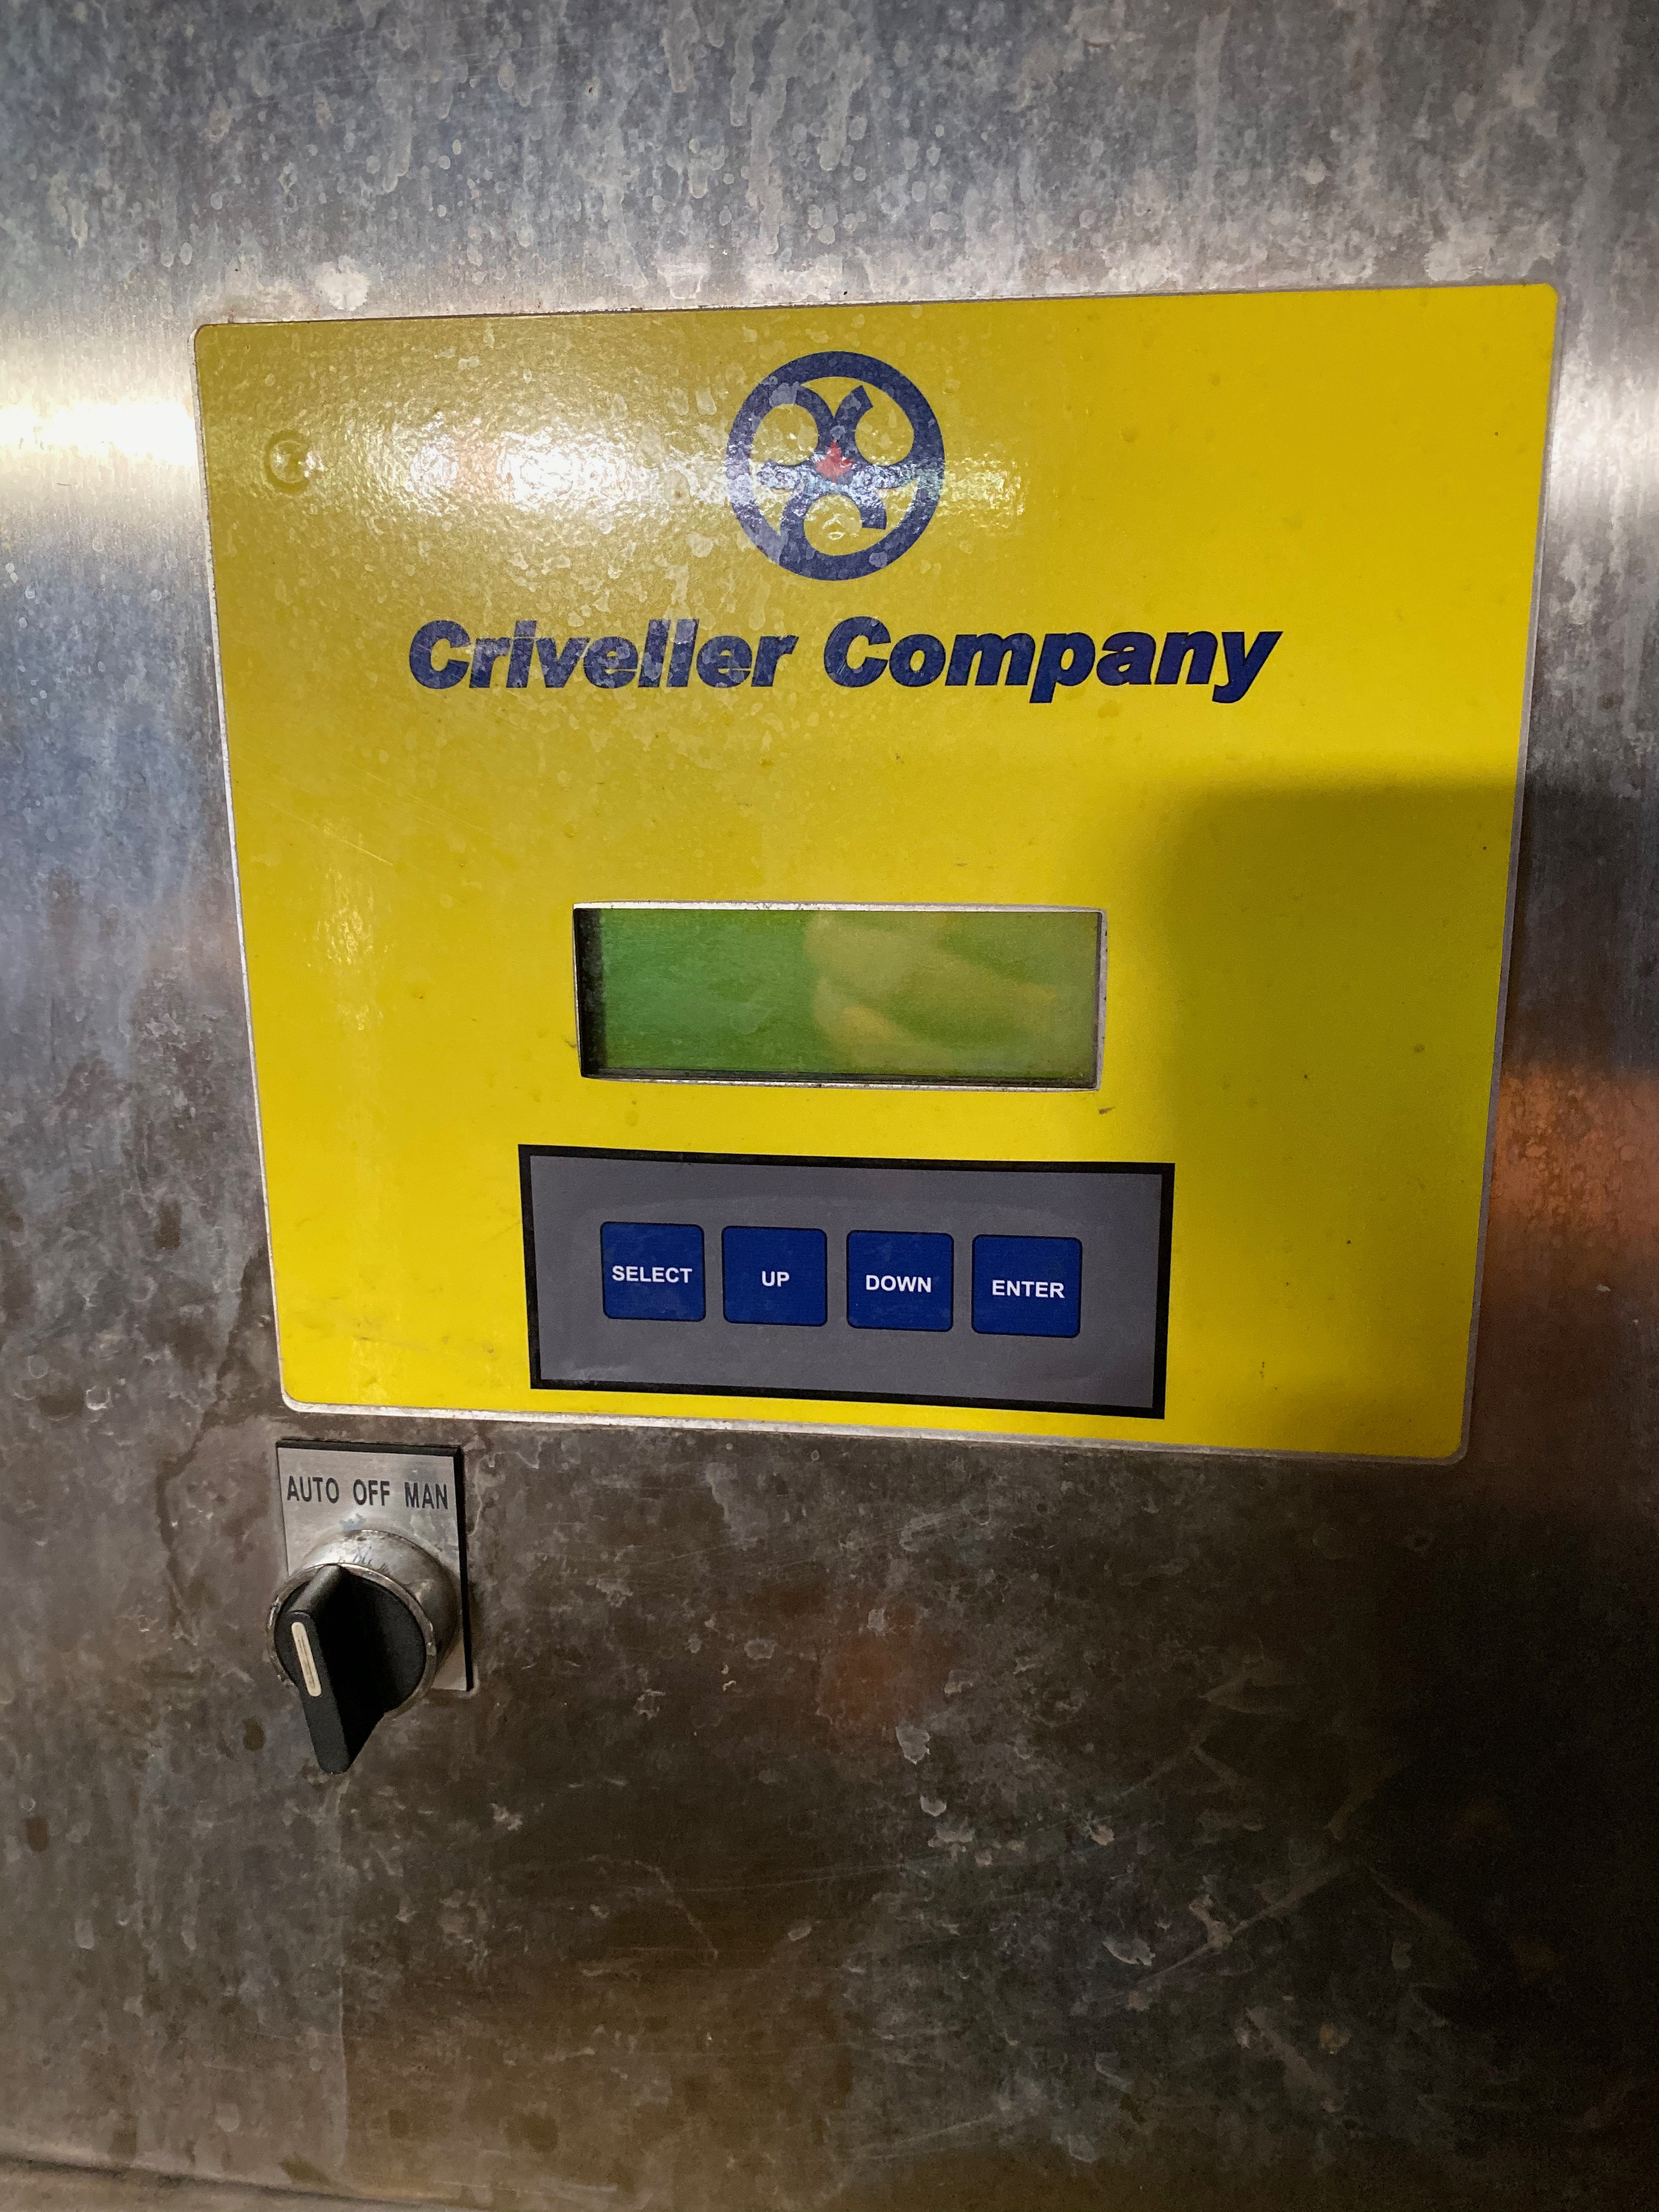 2014 Criveller 2-Station Keg Washer, 20-22 Kegs Per Hour, PLC | Sub to Bulk | Rig Fee: $150 - Image 2 of 8